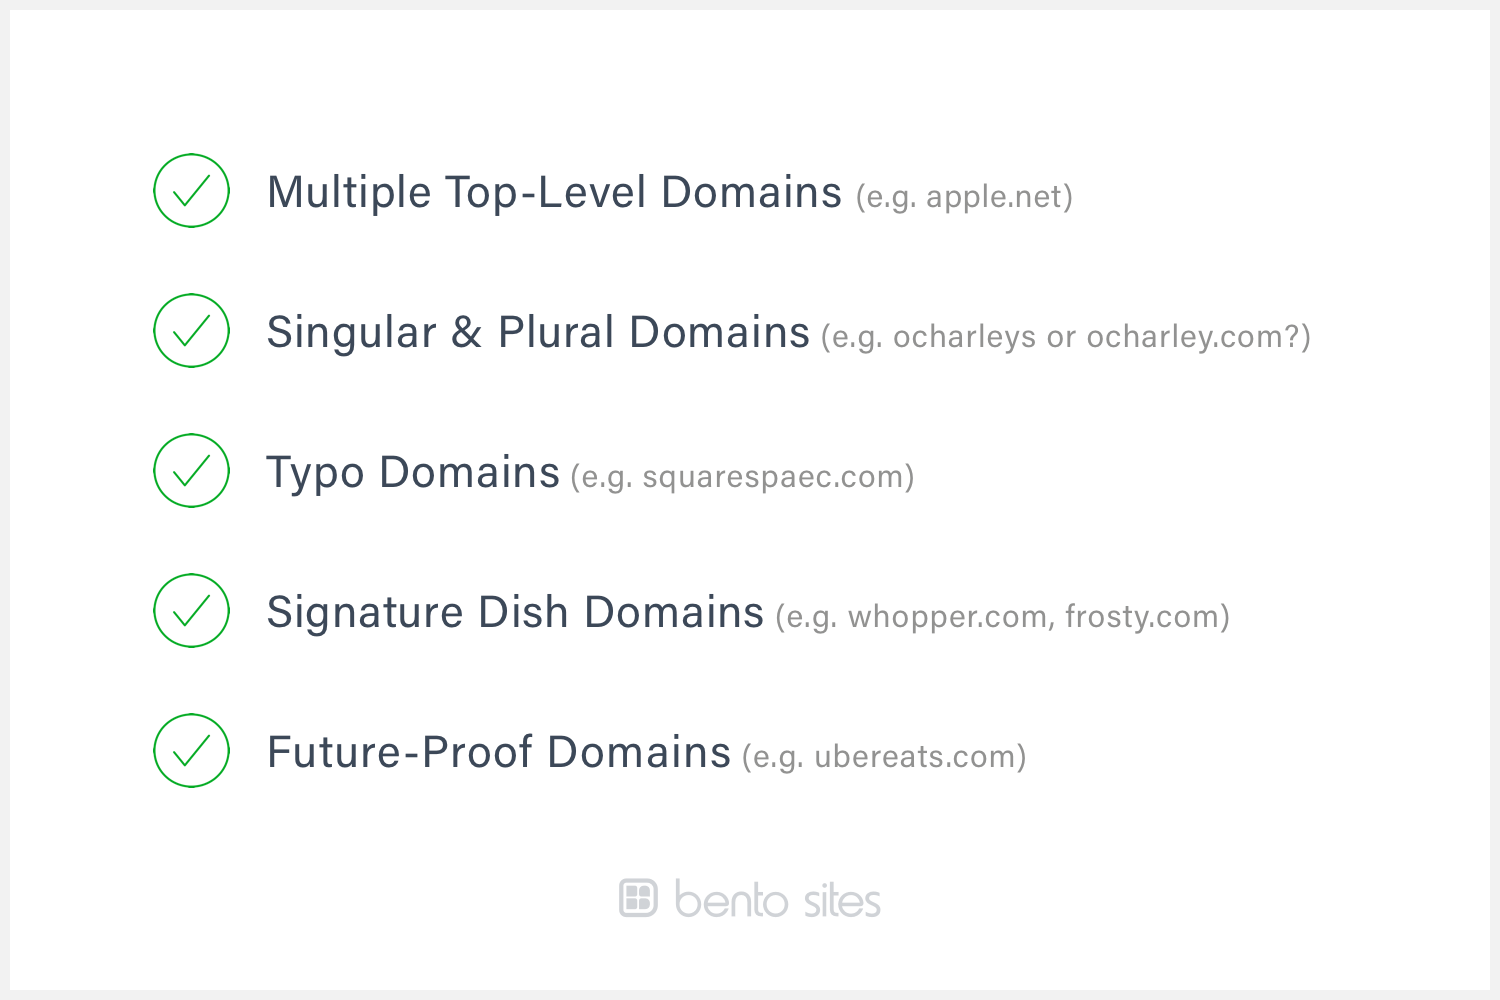 A checklist that describes the kinds of domains to register.